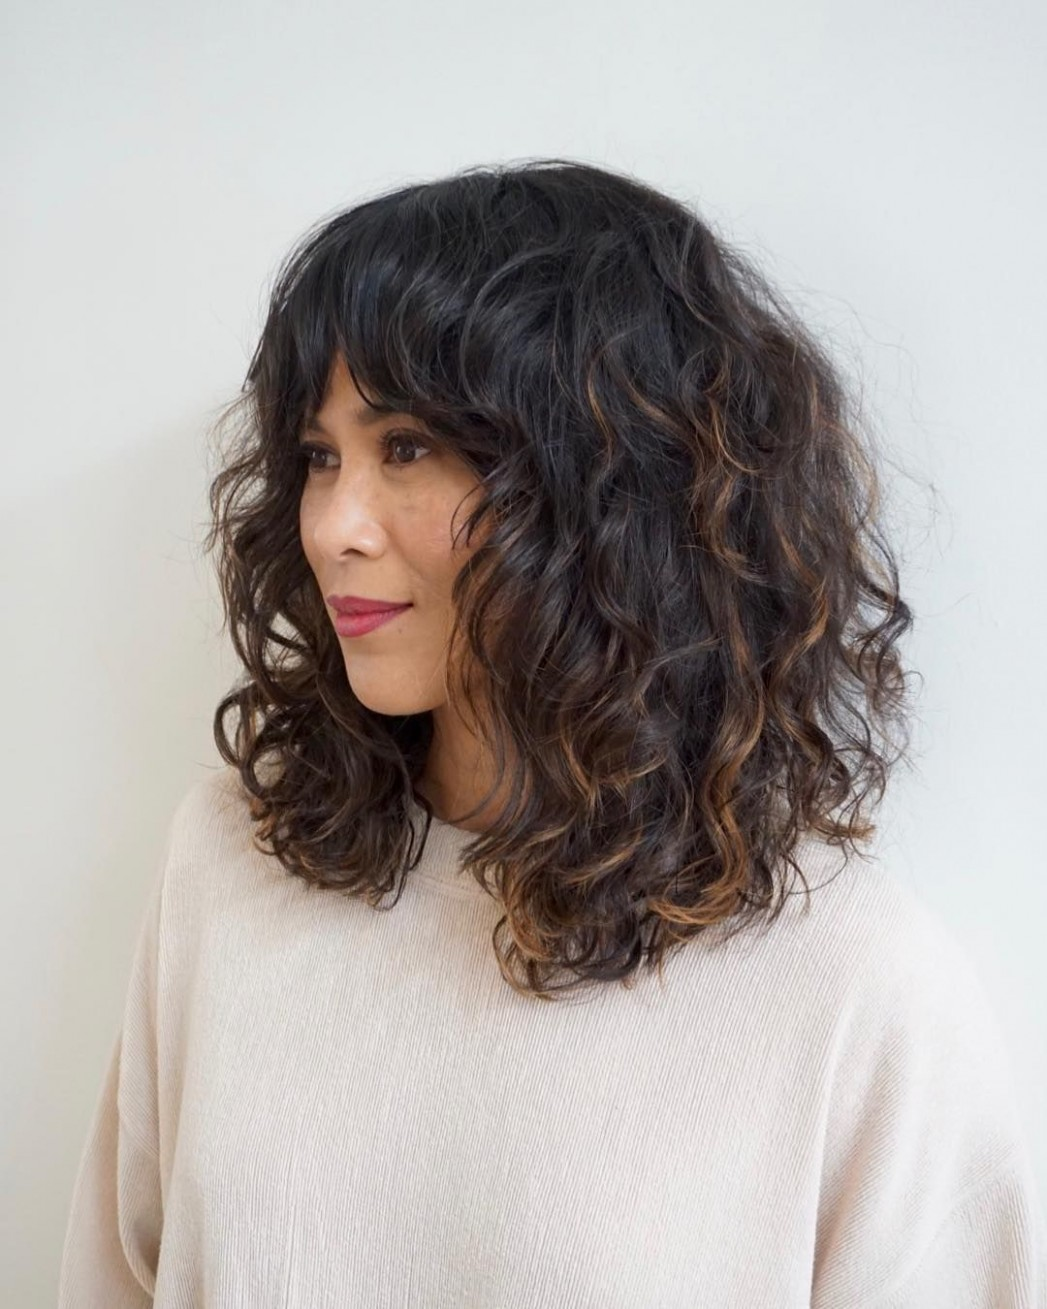 Whether You Want Trendy, Blunt And Polished, Textured With Bangs Curly Lob With Bangs